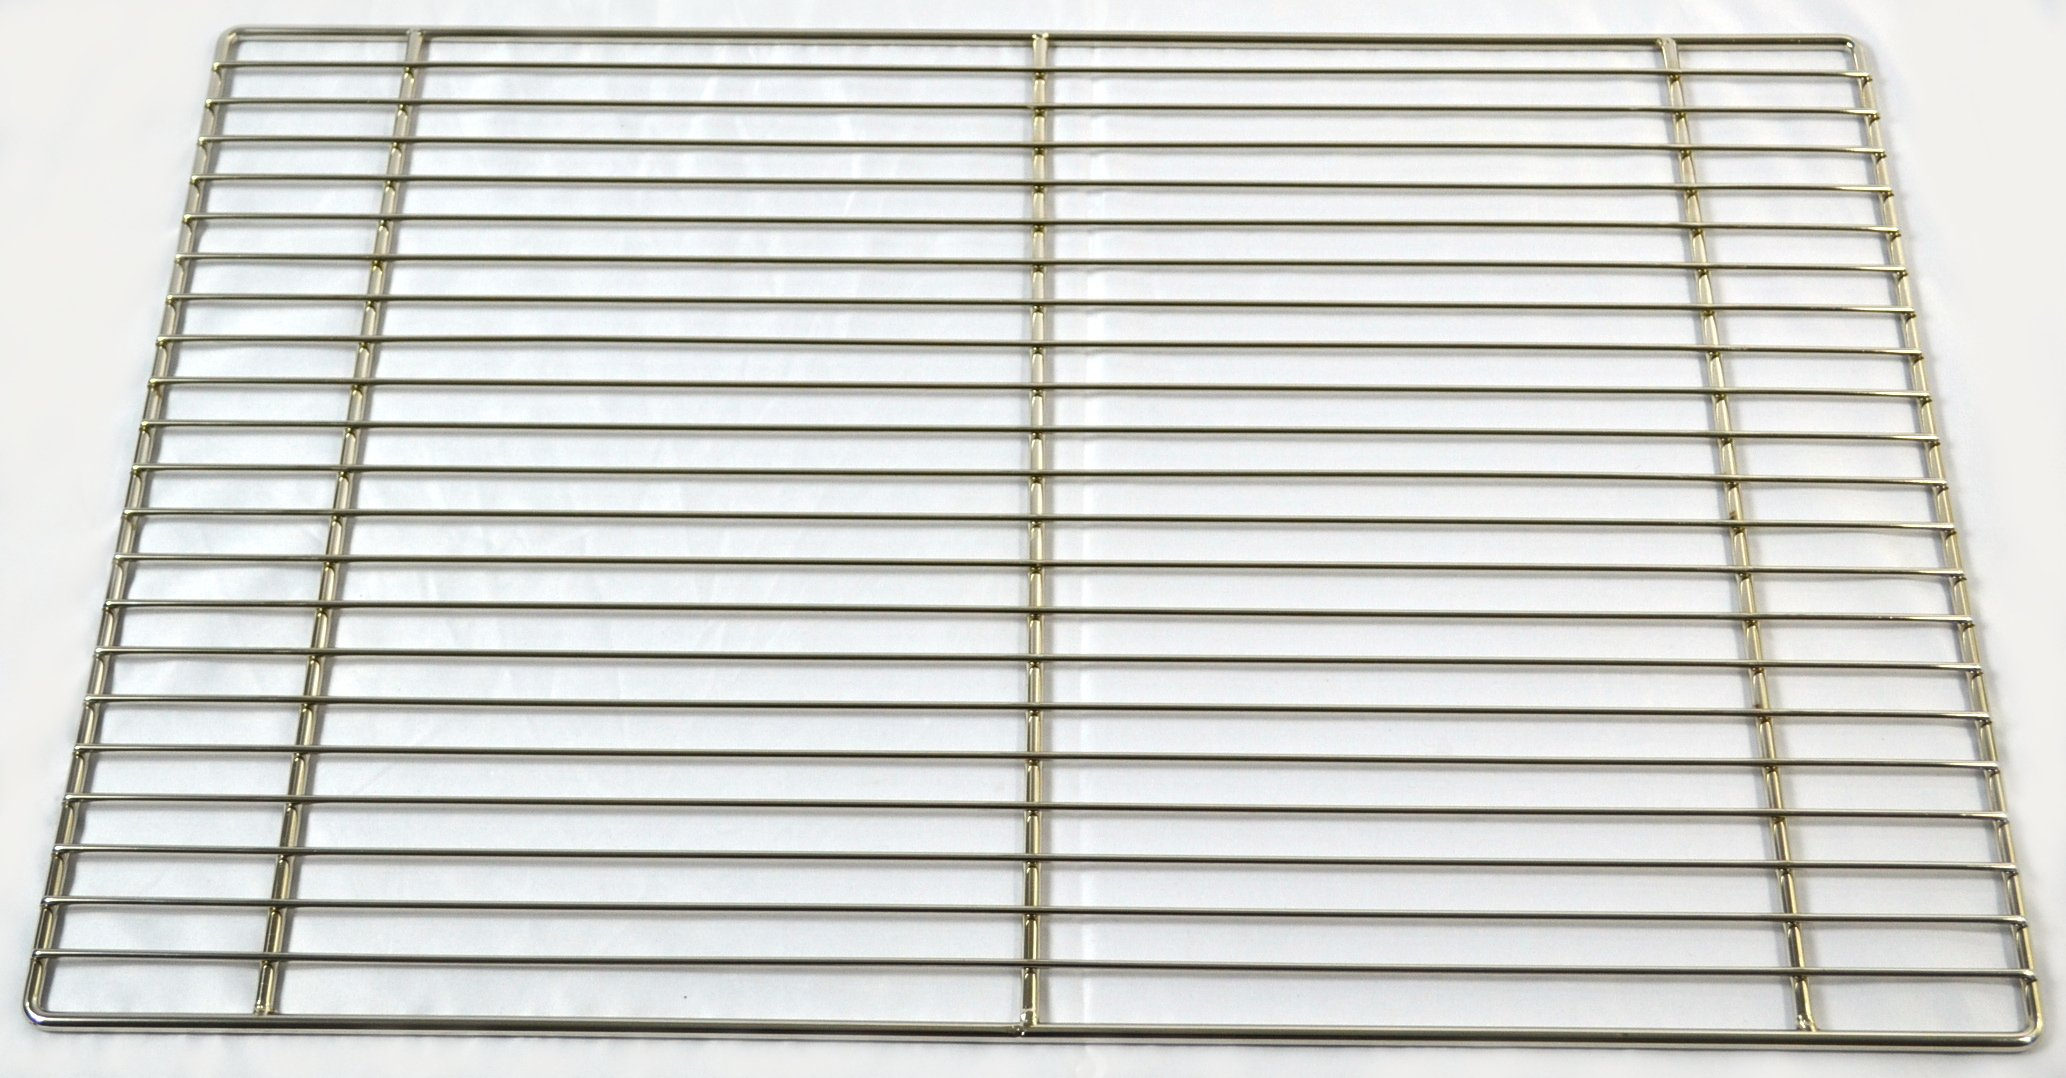 17'' x 25'' Cooling Rack, Nickel Plated (5)